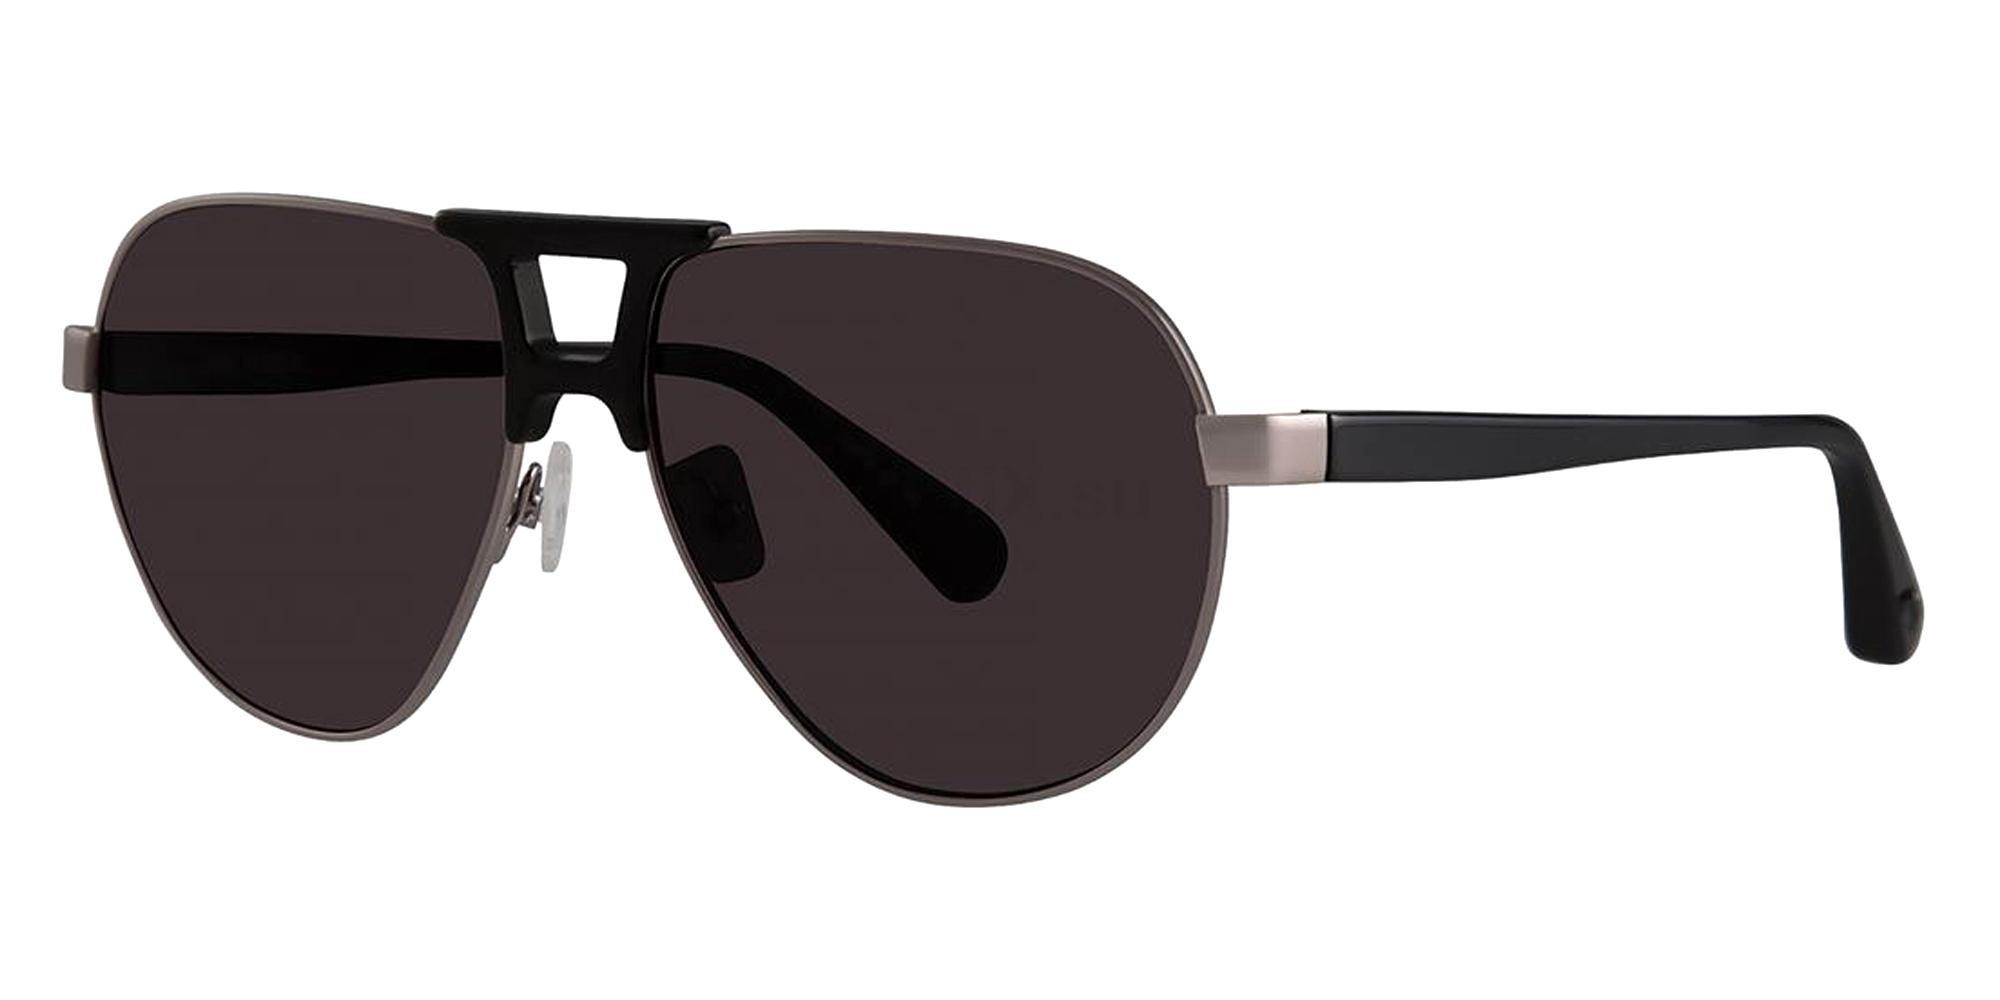 Black ARROH Sunglasses, Zac Posen